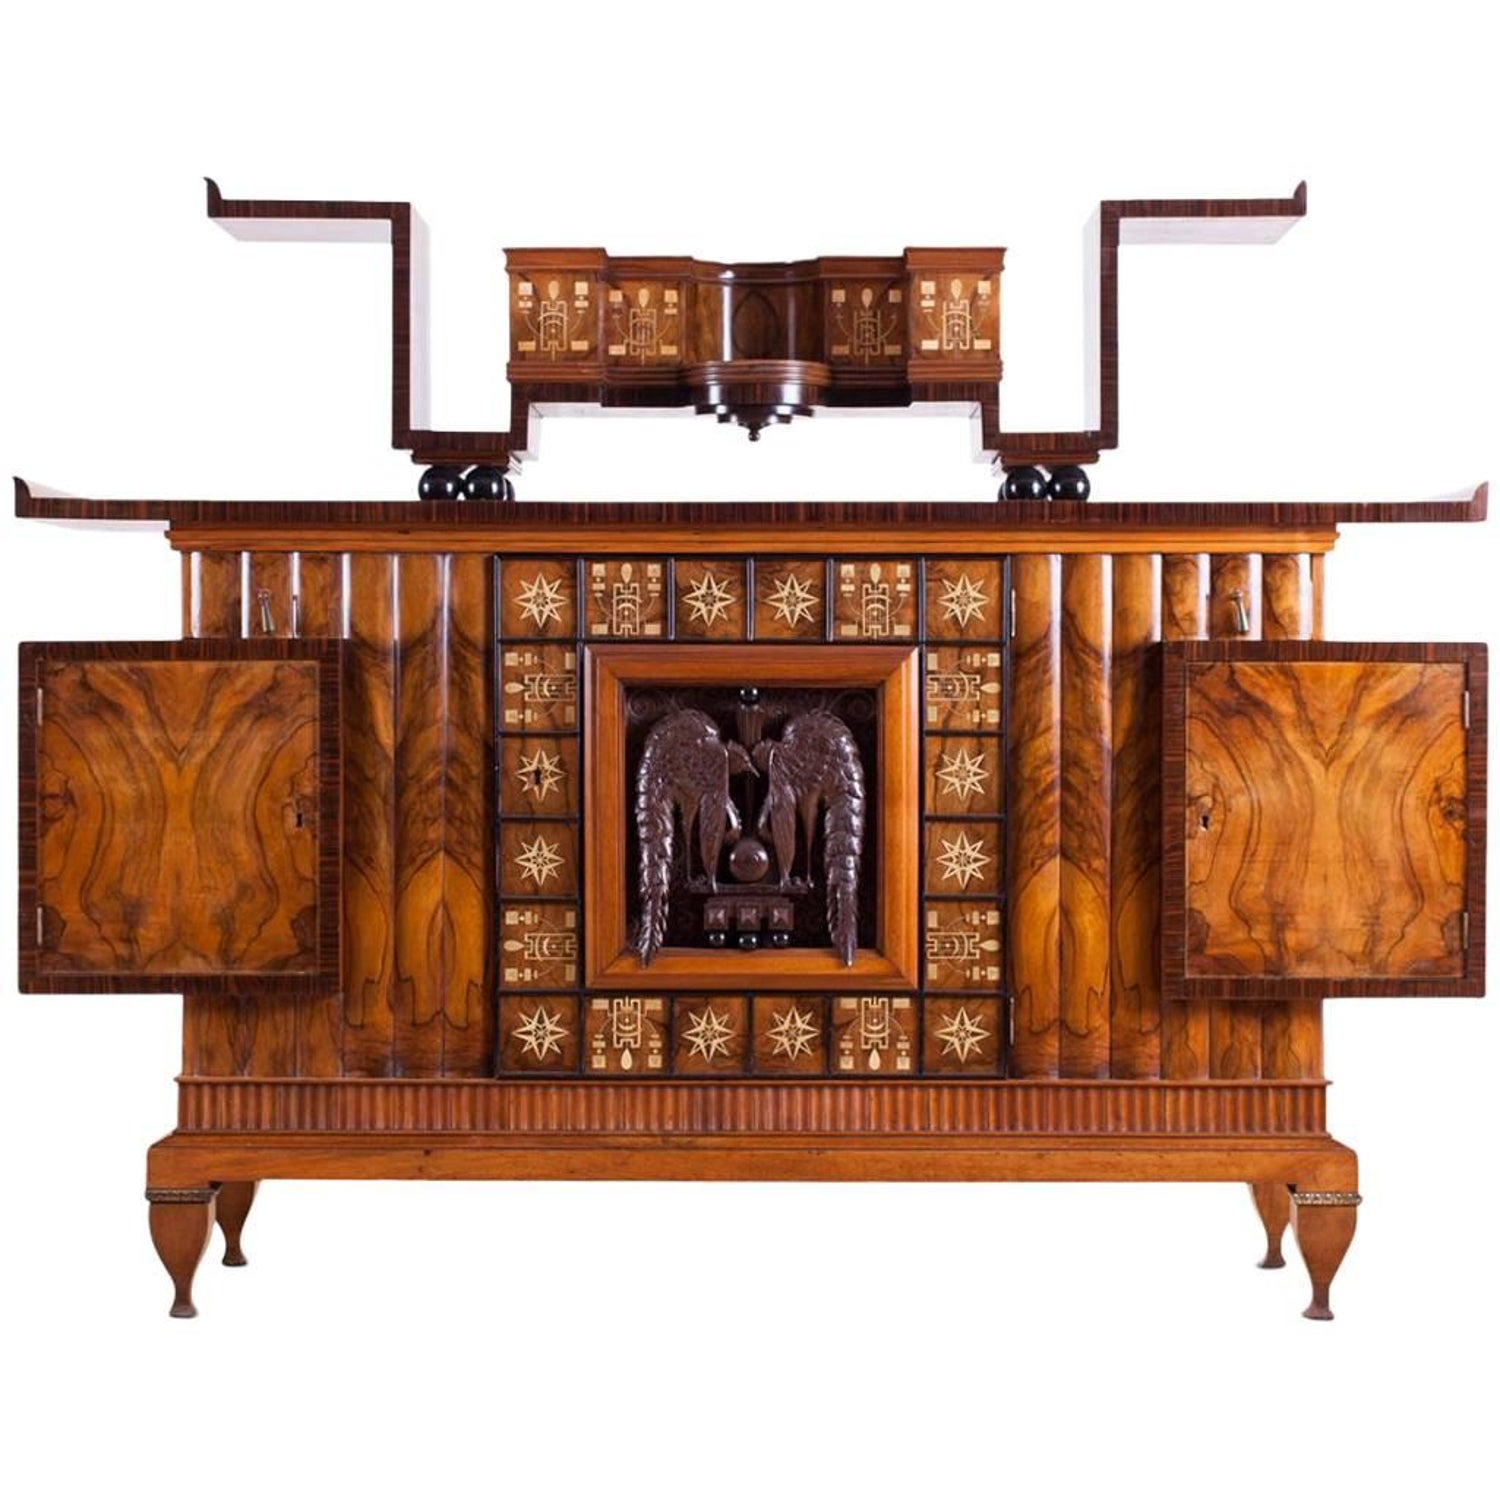 8884ad271c51b Osvaldo Borsani Art Deco Credenza For Sale at 1stdibs